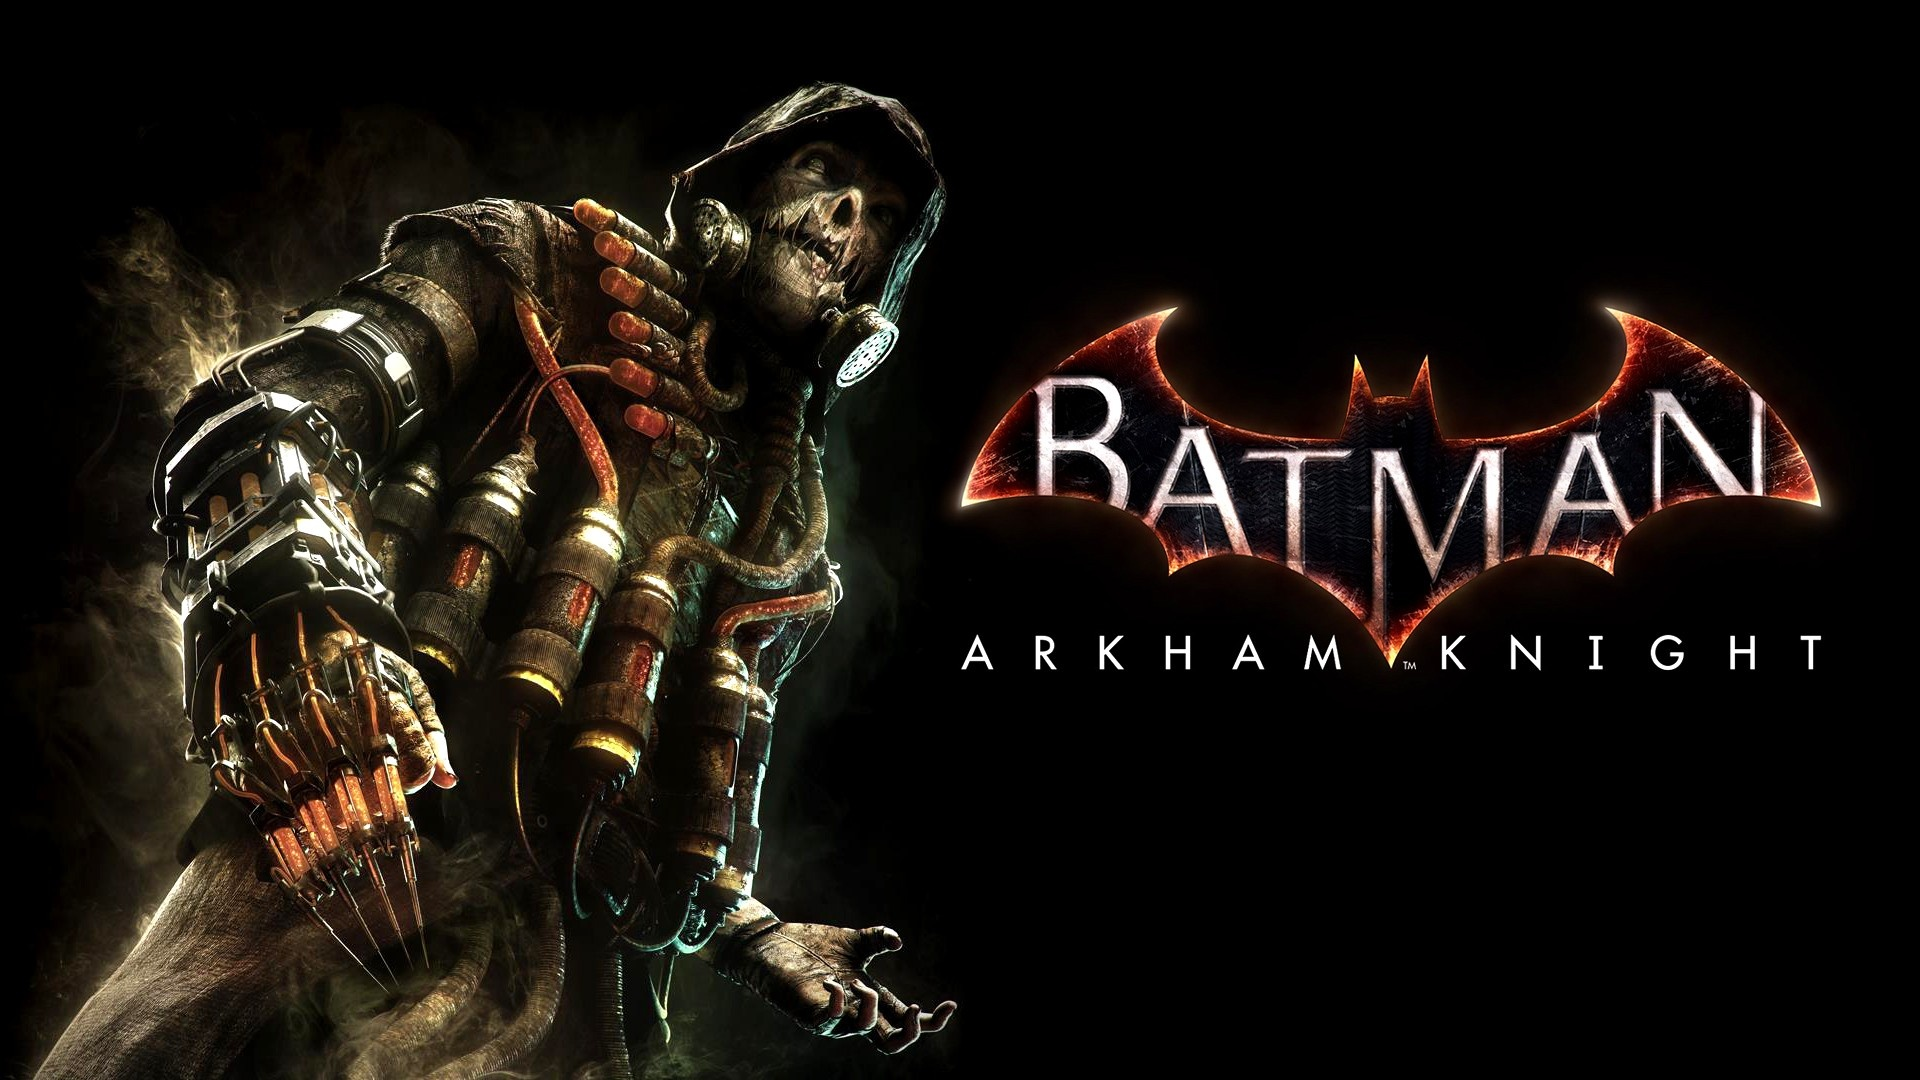 Batman Arkham Knight Scarecrow Wallpapers   1920x1080   445020 1920x1080